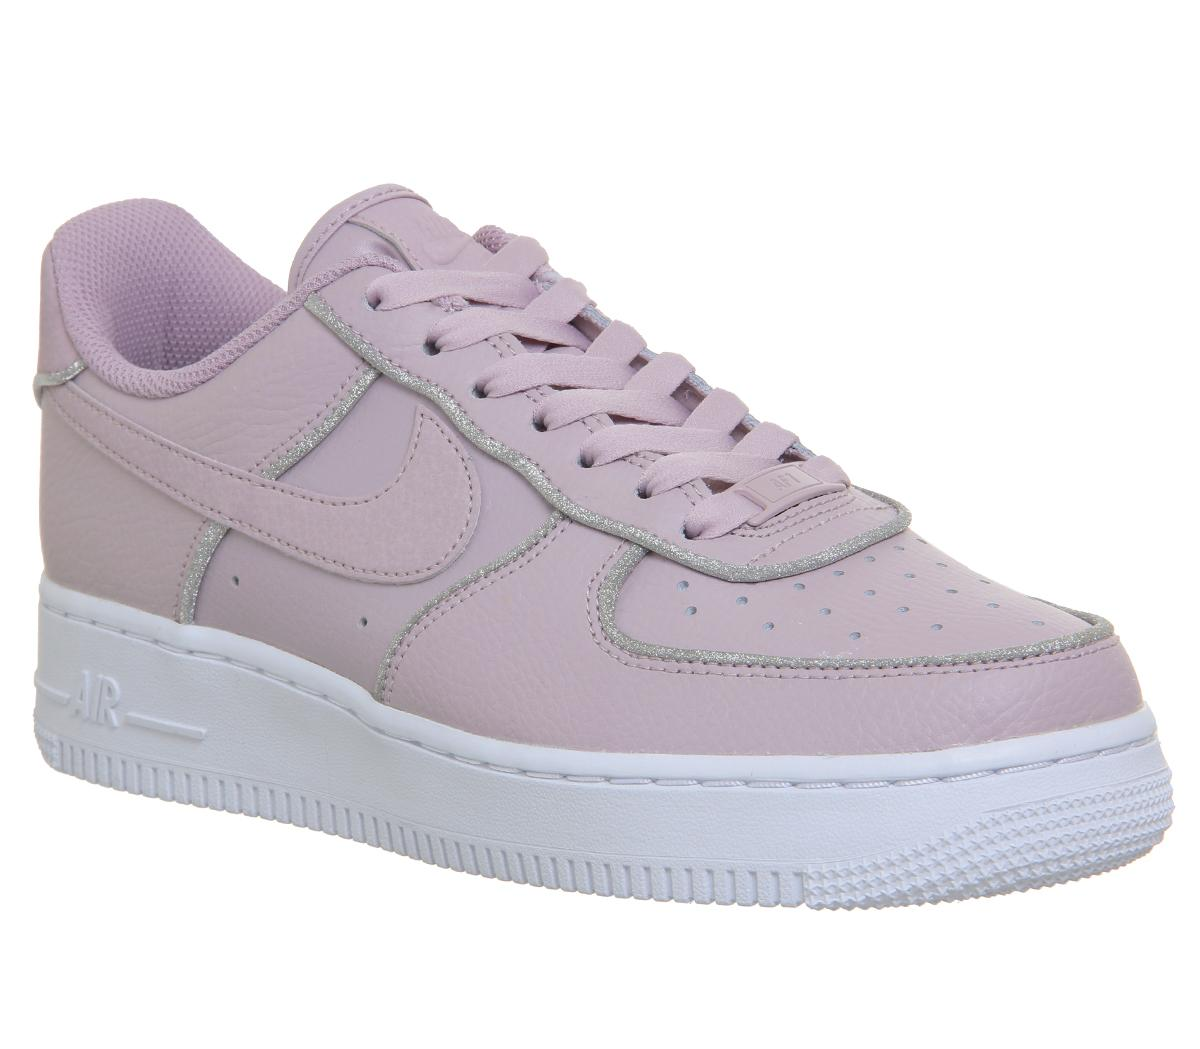 Nike Air Force 1 07 Trainers Particle Rose Glitter - Sneaker damen